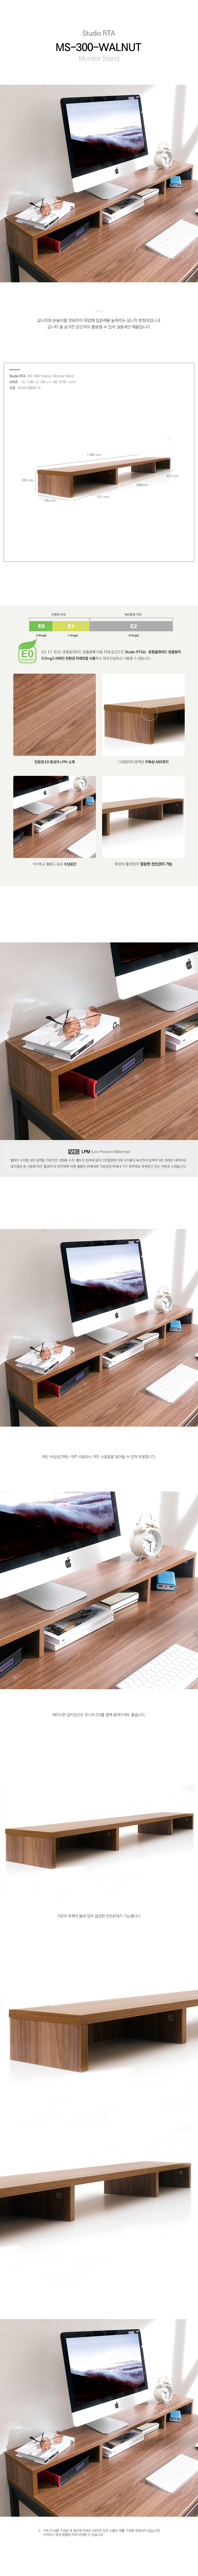 Walnut_Monitor_Stand_20180226.jpg